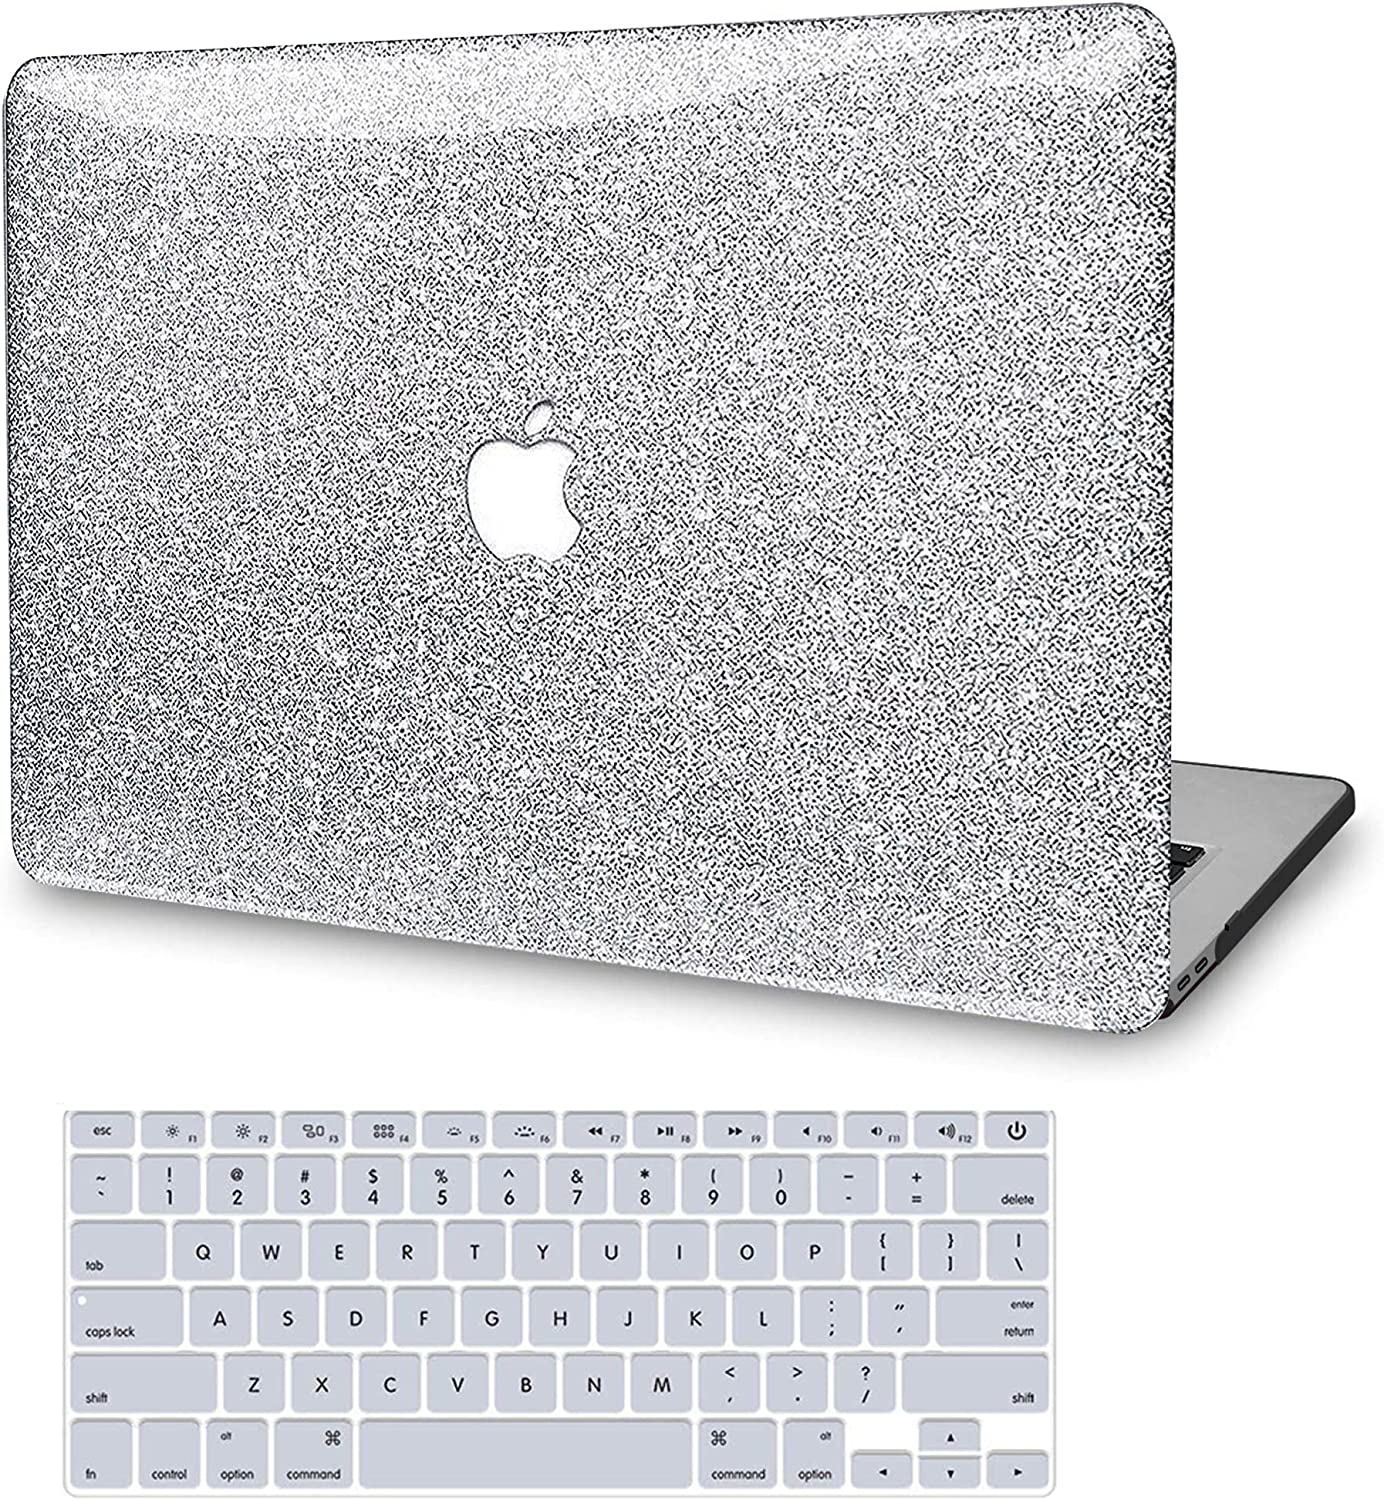 MacBook Pro 13 Inch Case 2020 2019 2018 2017 2016 Release A2251 A2289 A2159 A1989 A1706 A1708, JGOO Glitter Sparkly Plastic Hard Shell with Keyboard Cover for Mac Pro 13 with/Without Touch Bar, Silver